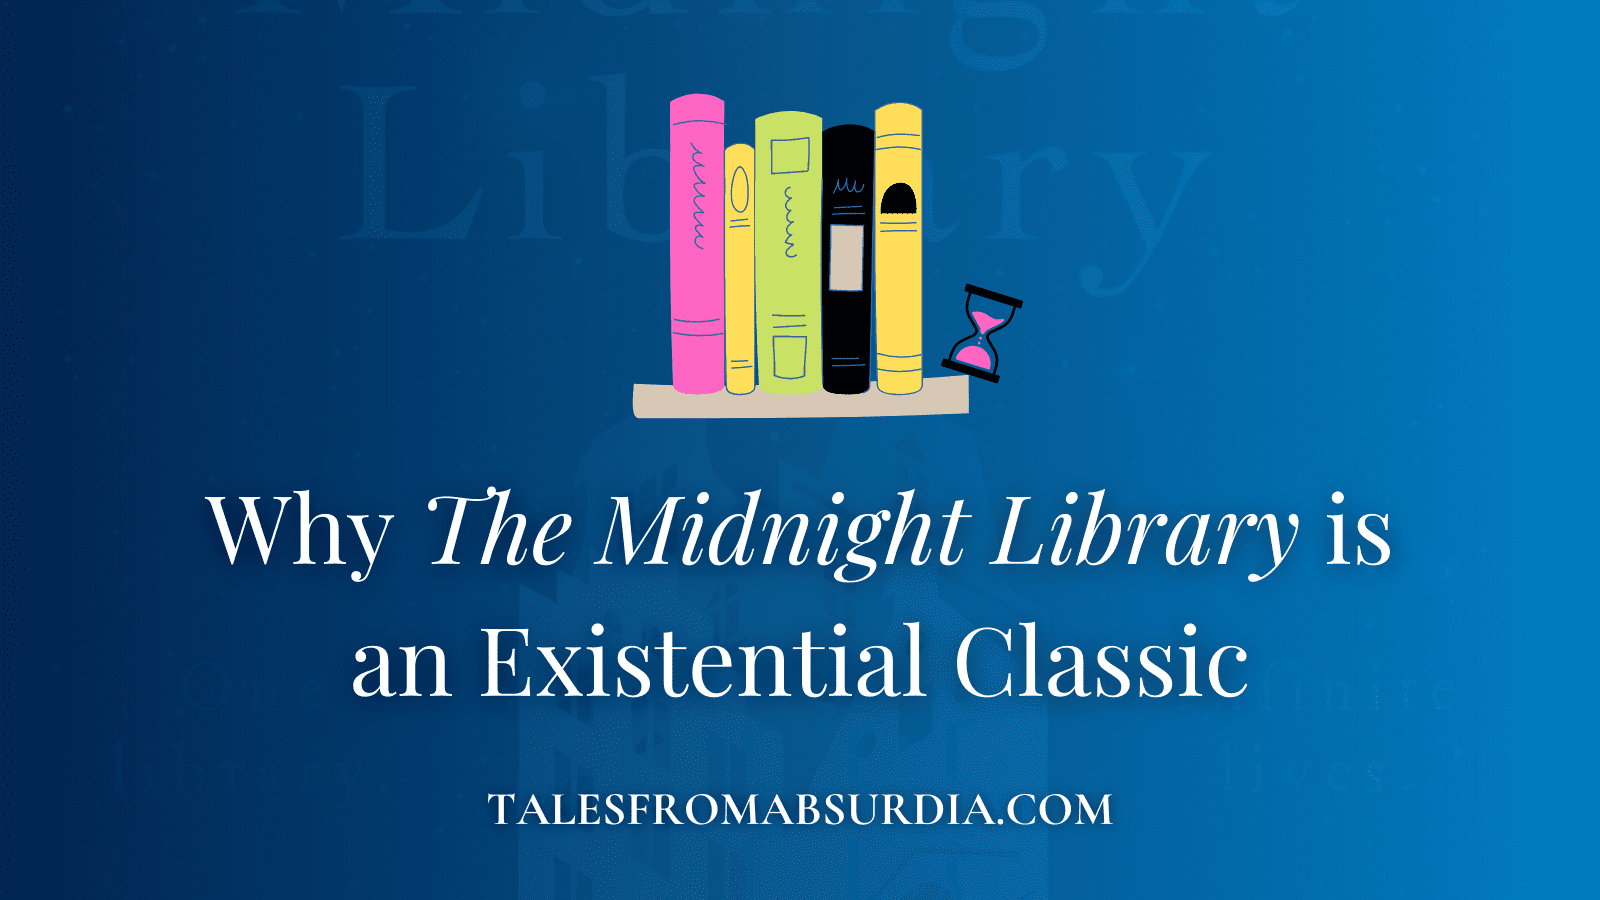 Why The Midnight Library is an Existential Classic